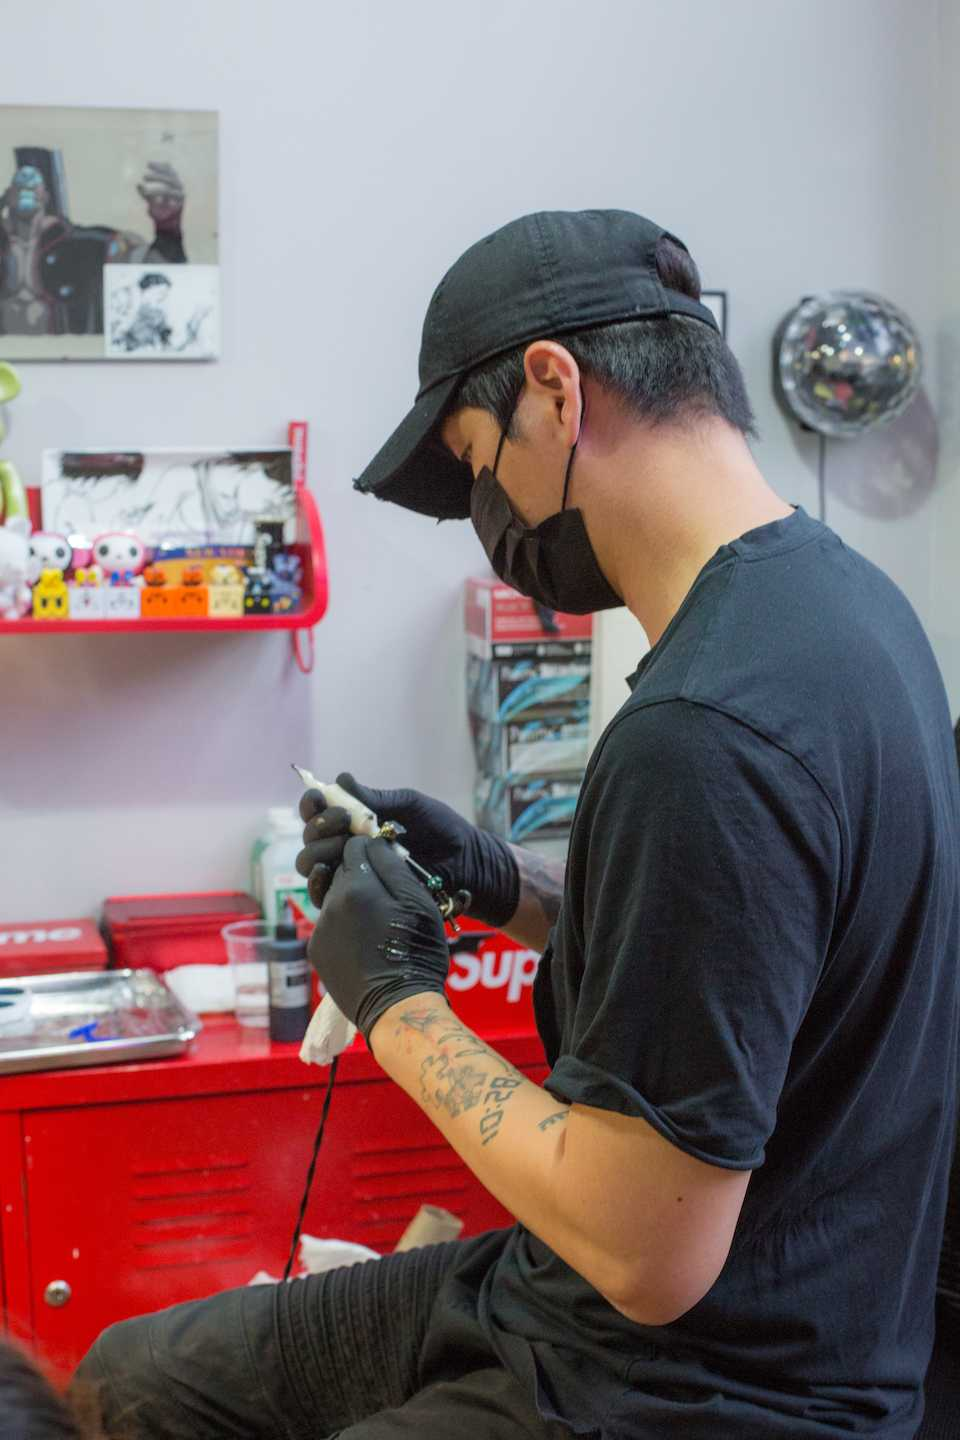 27ba208b6 Jay Shin is a Korean tattoo artist at Black Fish Tattoo. He specializes in  minimalistic and fine line designs, though he is not limited by it.